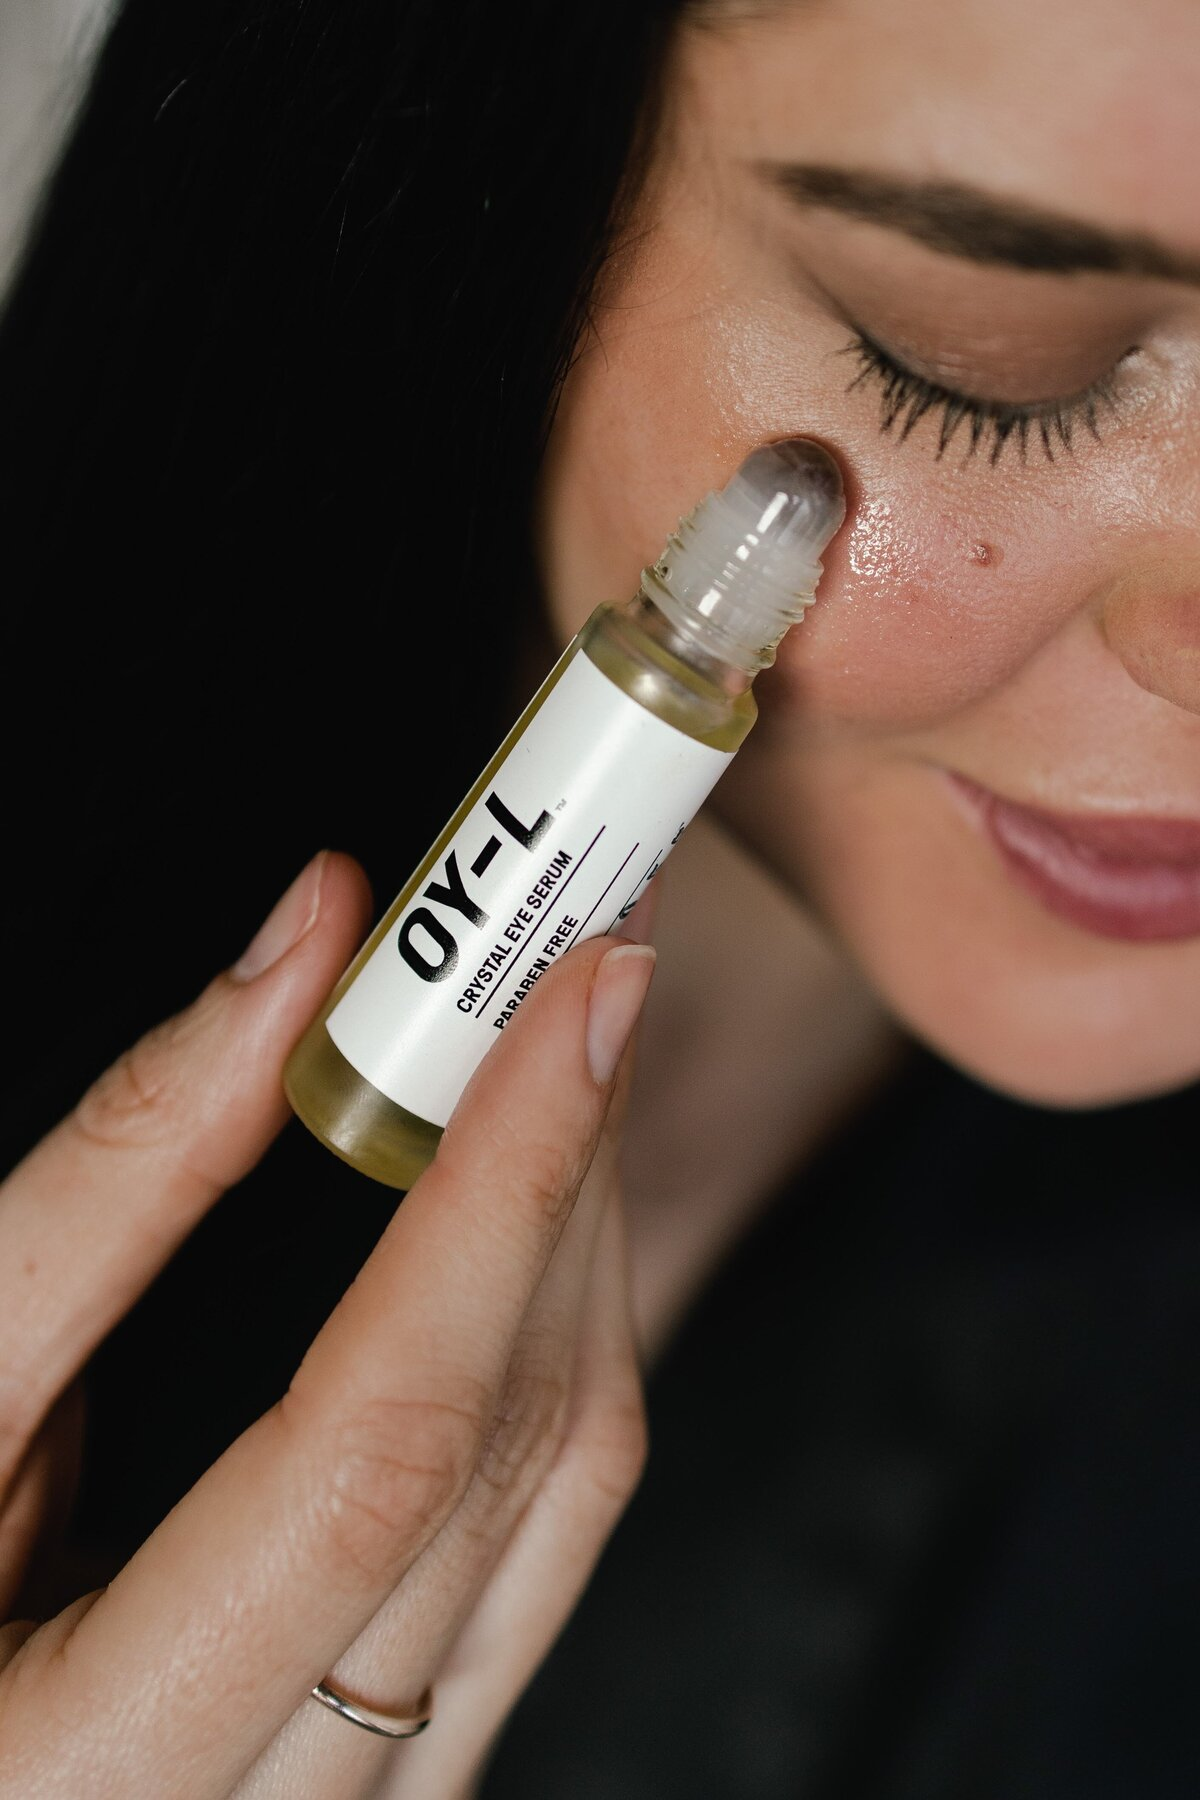 OY-L Clean Beauty Under Eye Serum for Dark Circles Review by Clean Beauty Blogger Alex Perry